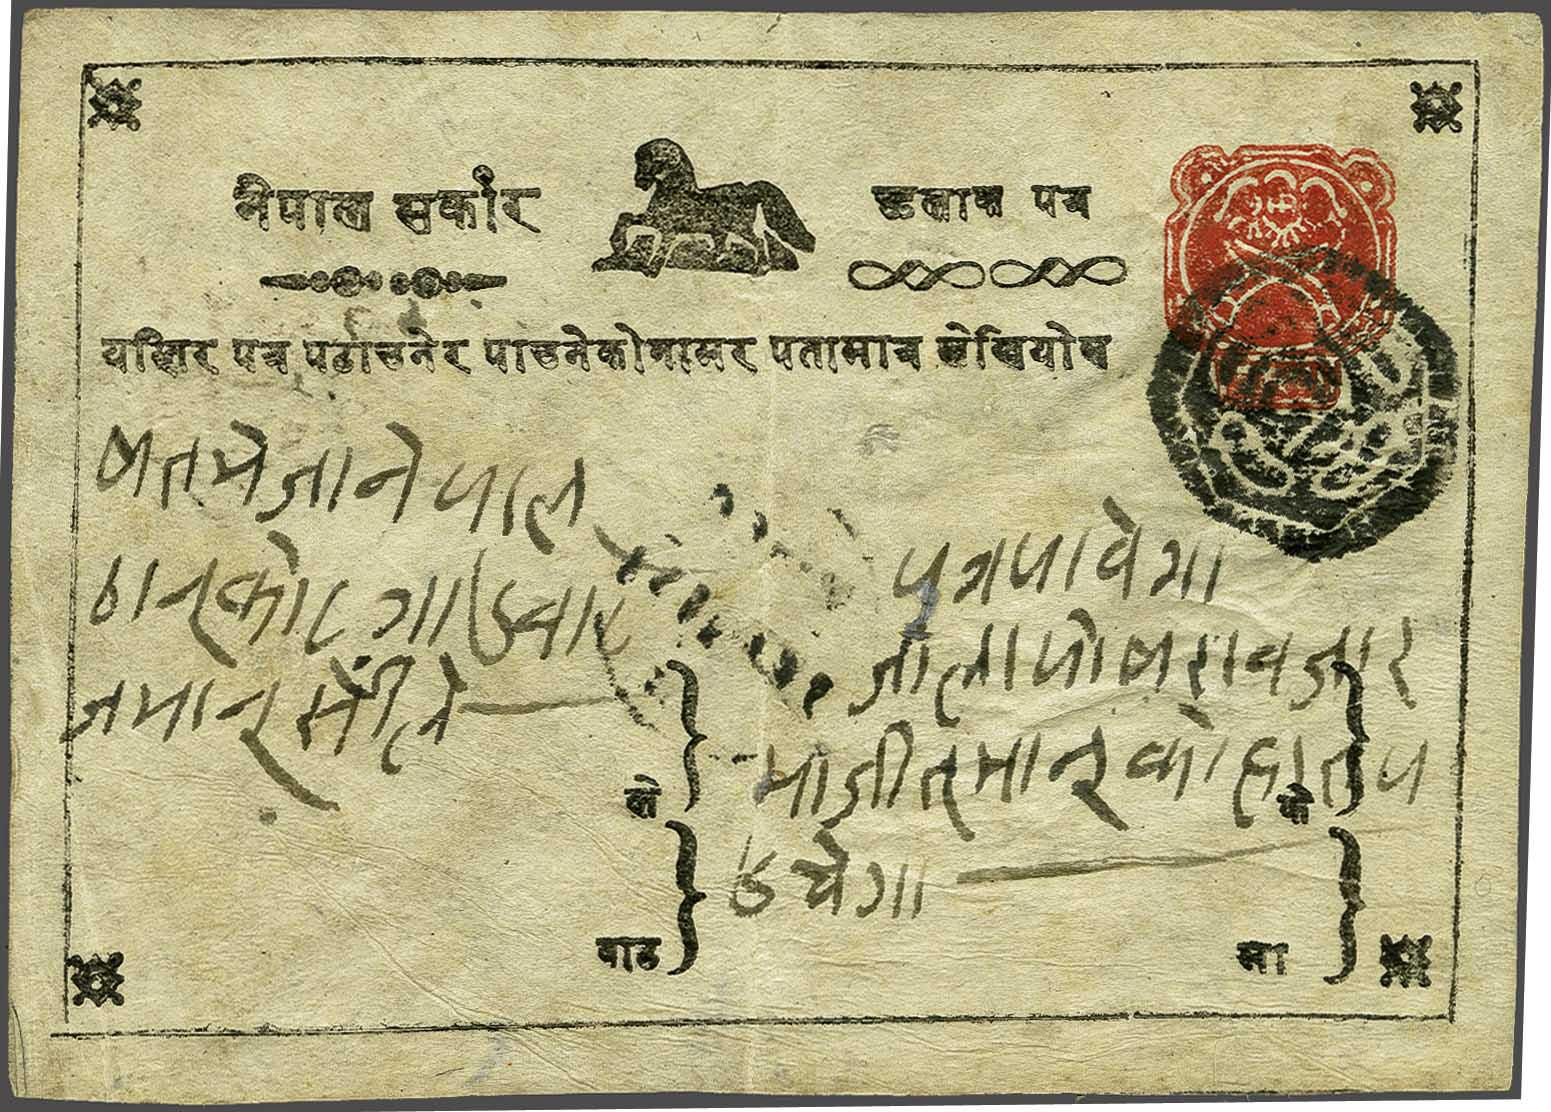 Lot 6 - Great Britain and former colonies Nepal -  Corinphila Veilingen Auction 245-246 Day 1 - Nepal - The Dick van der Wateren Collection, Foreign countries - Single lots, Picture postcards